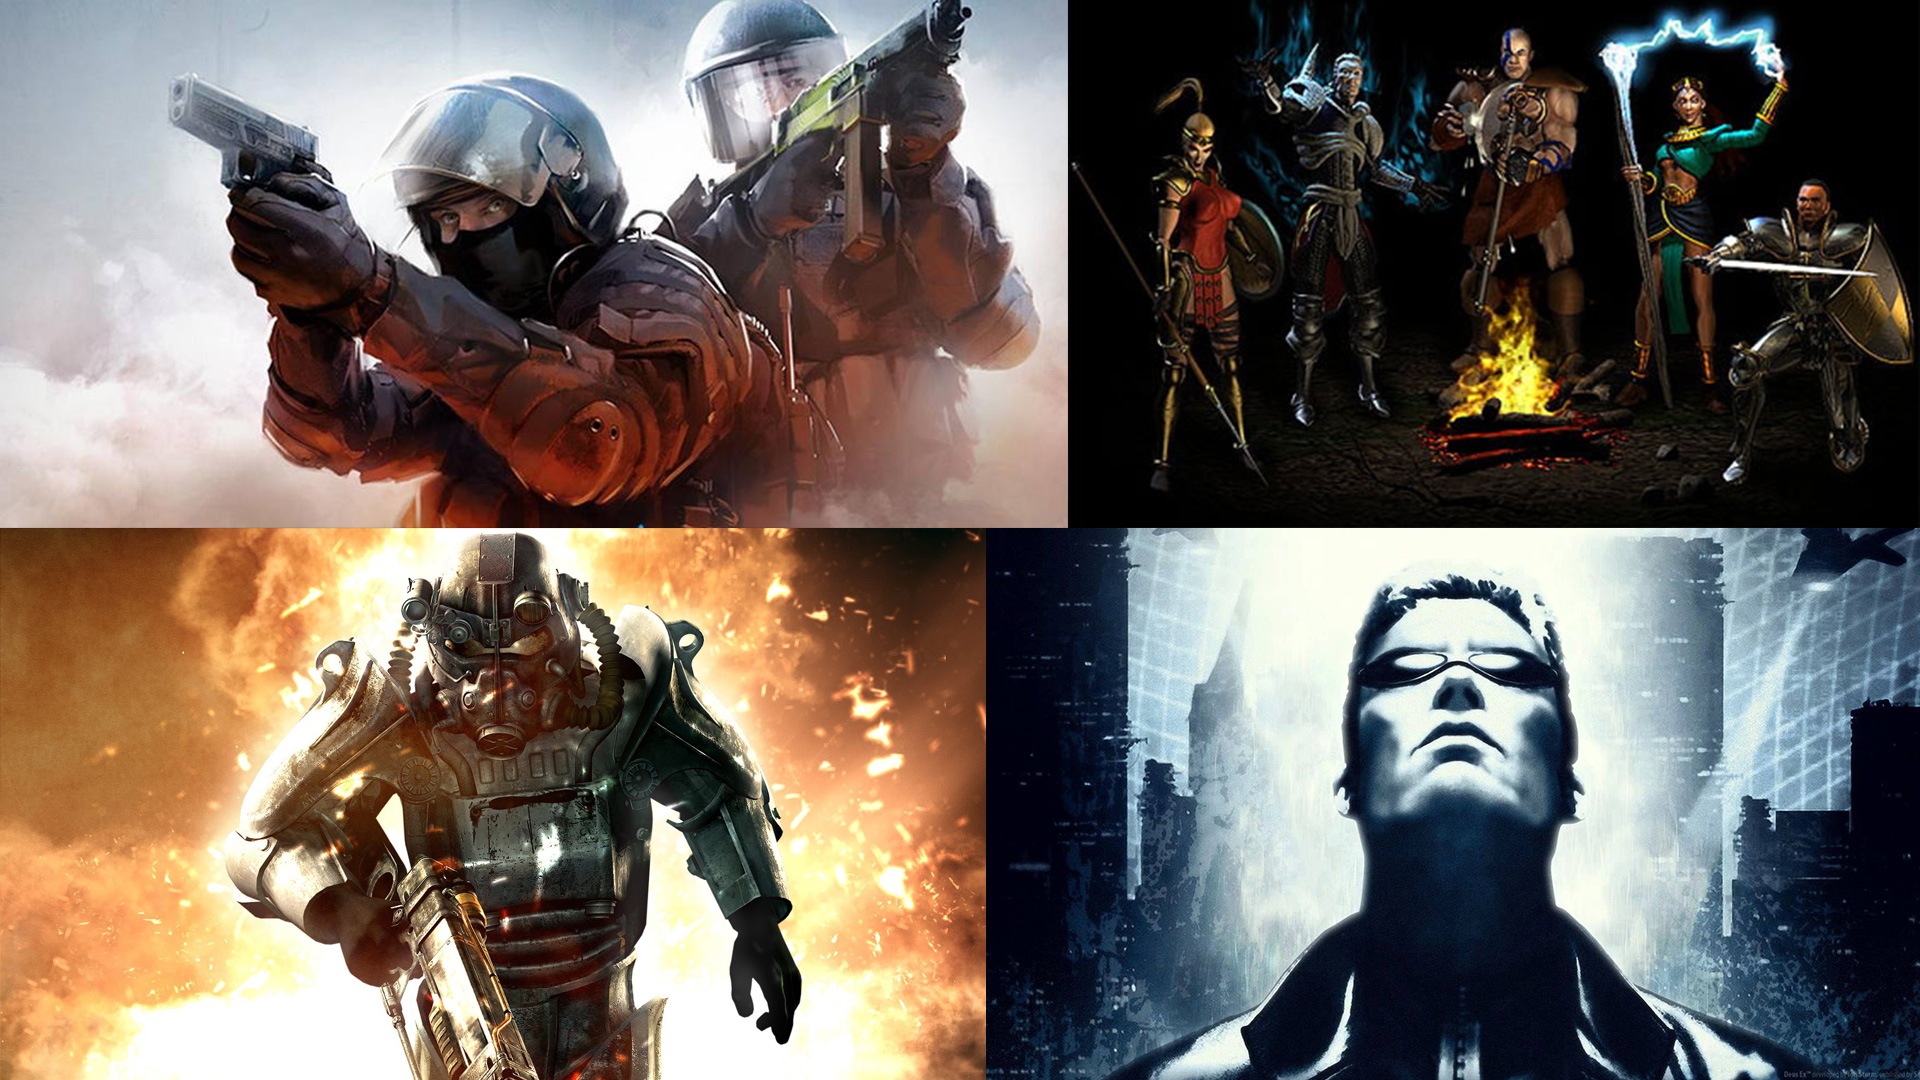 The most replayable PC and computer games of all time. Discover the best FPS, RPG, simulation, and strategy gaming hits ever in our top 10 guide. | ROG - Republic of Gamers Global